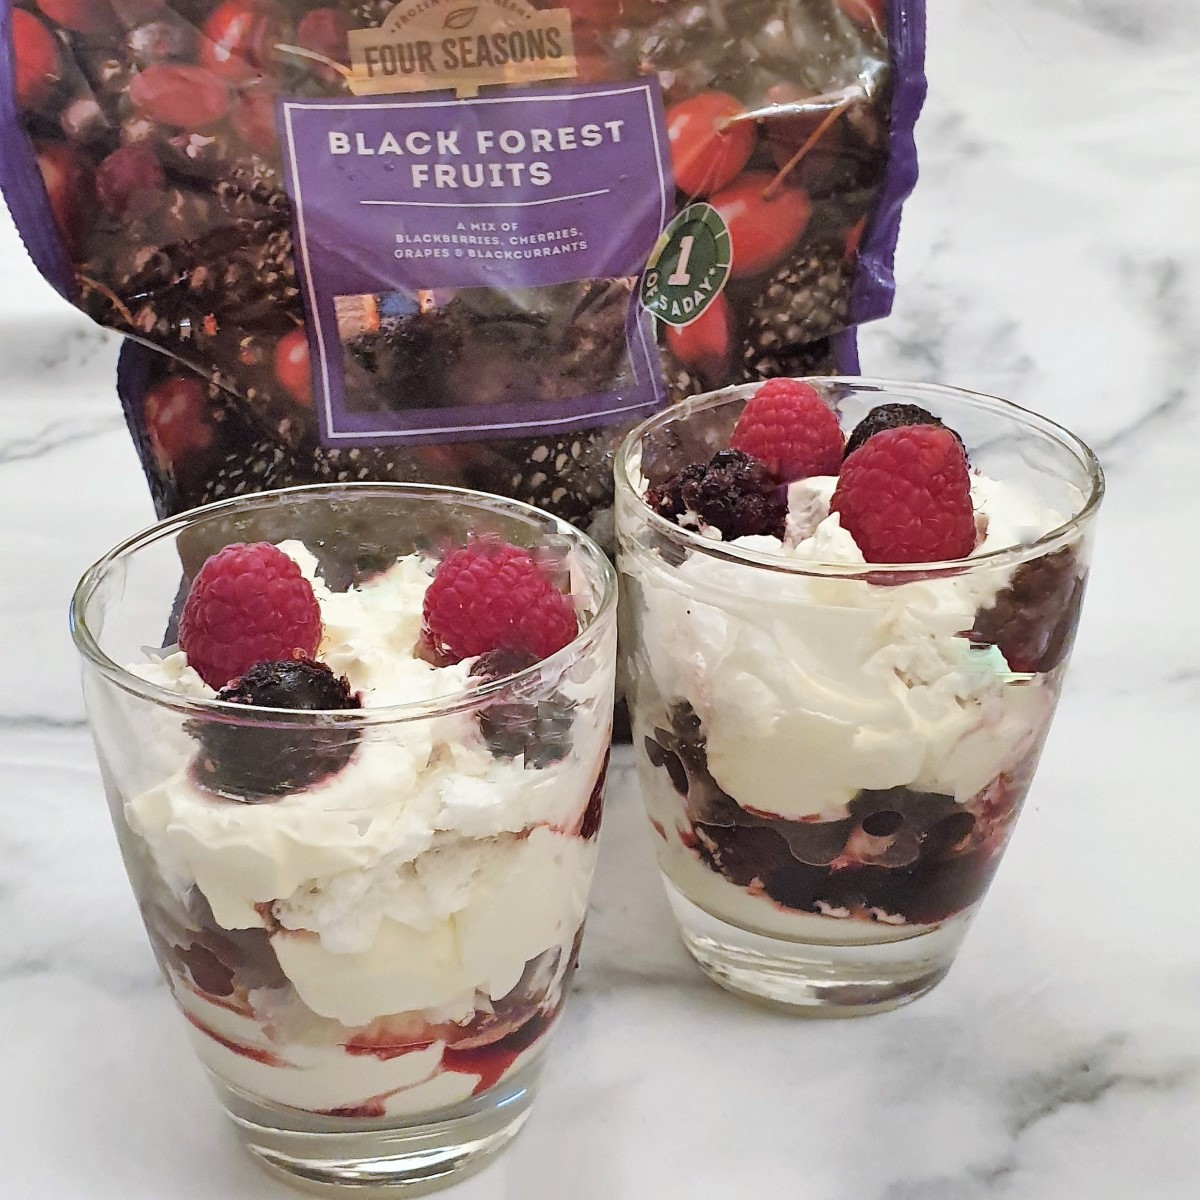 Two glasses of eton mess in front of a bag of frozen berries.